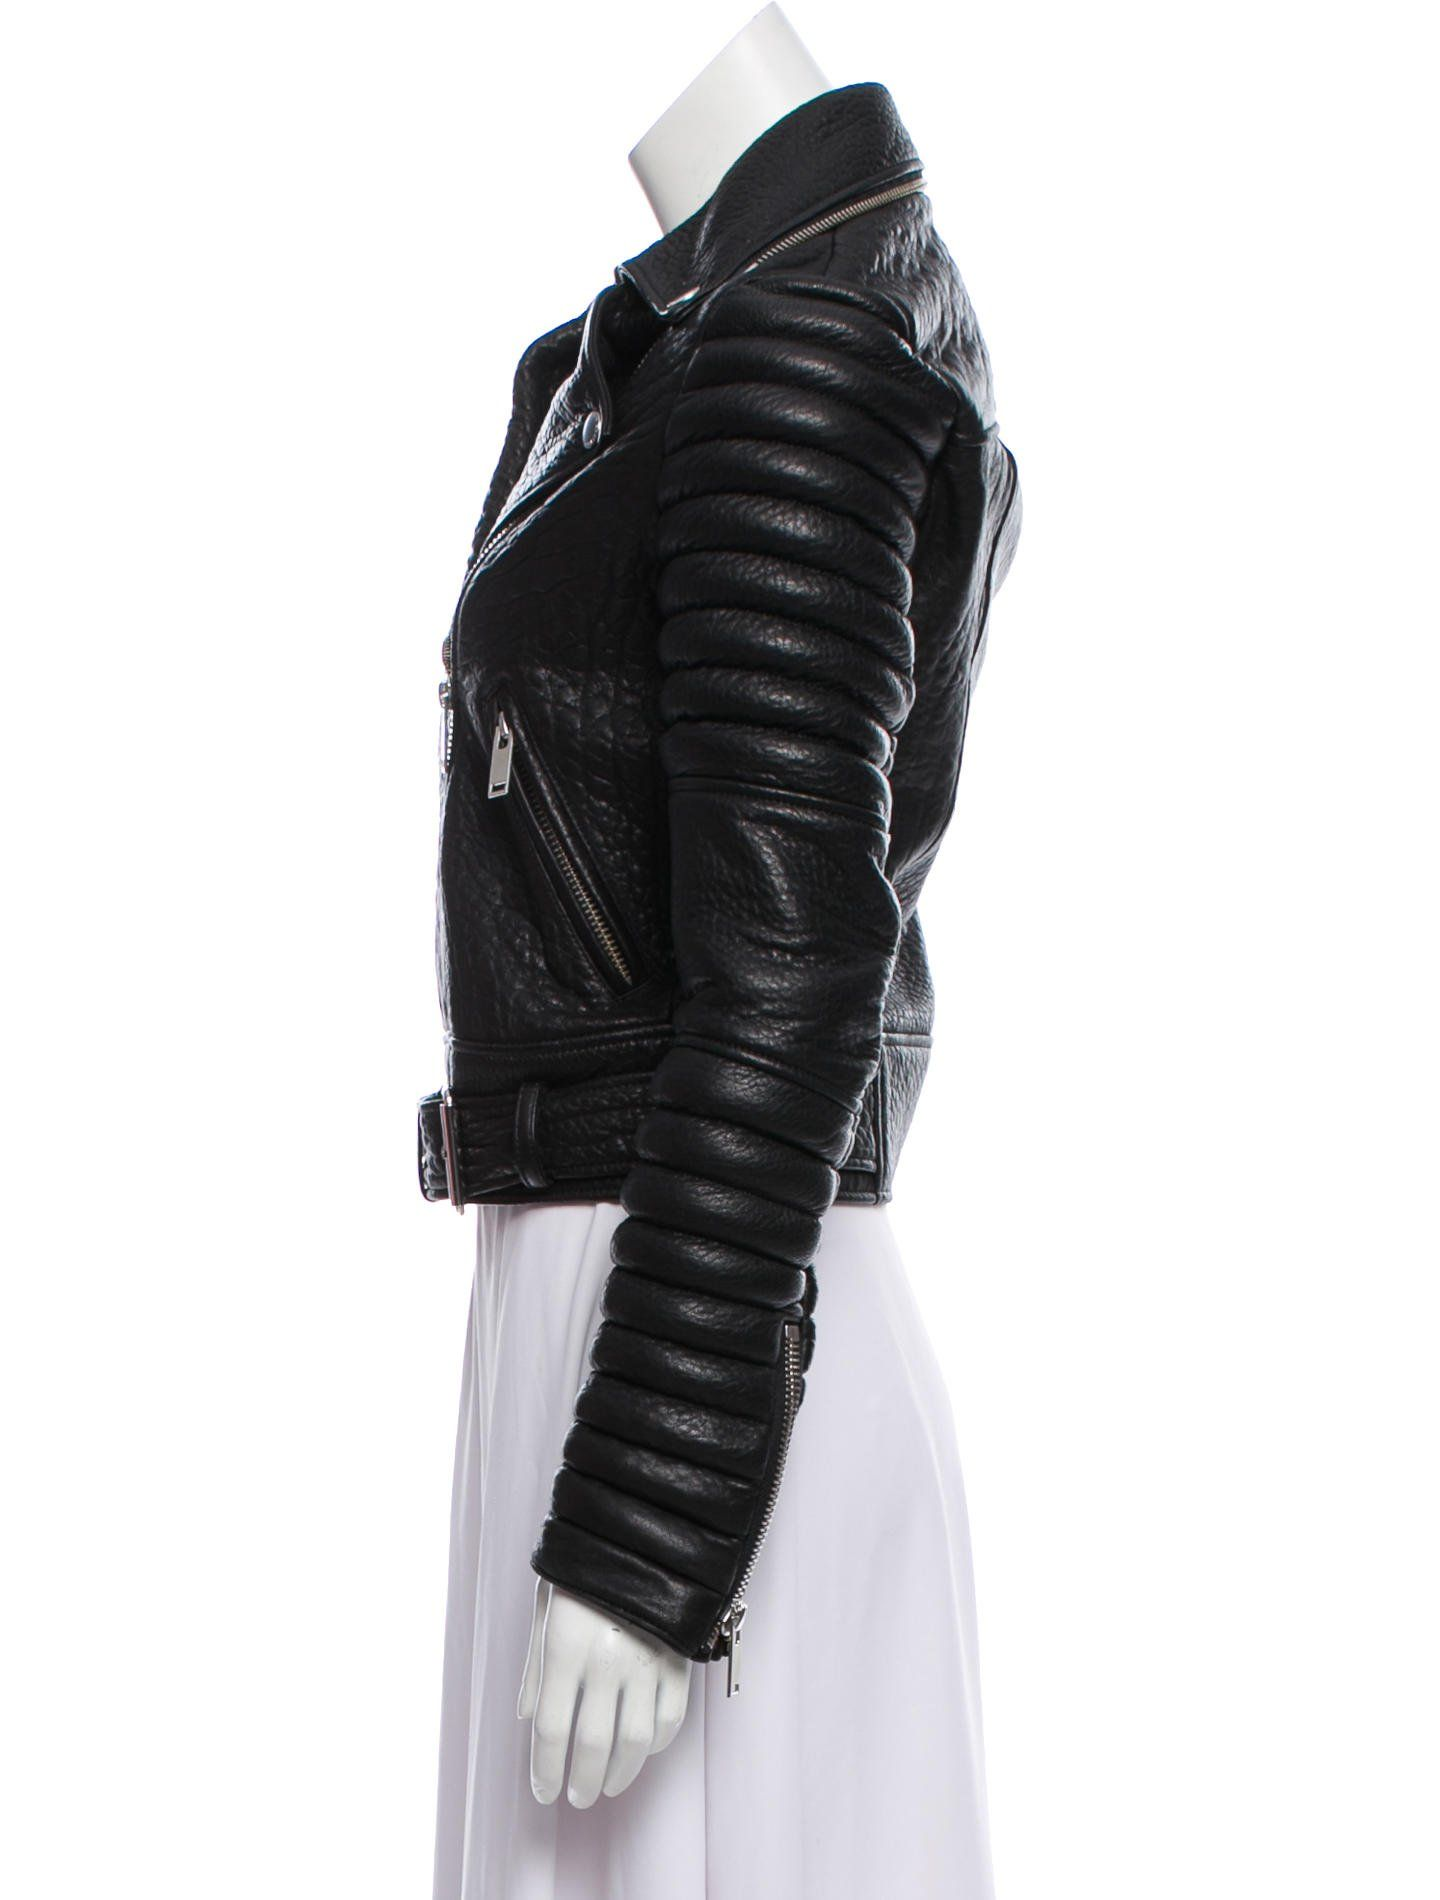 Black The Arrivals Leather Biker Jacket With Notched Lapels Quilted Sleeves Dual Pockets At Hips Buckle Accent At Biker Jacket Leather Biker Jacket Jackets [ 1900 x 1440 Pixel ]